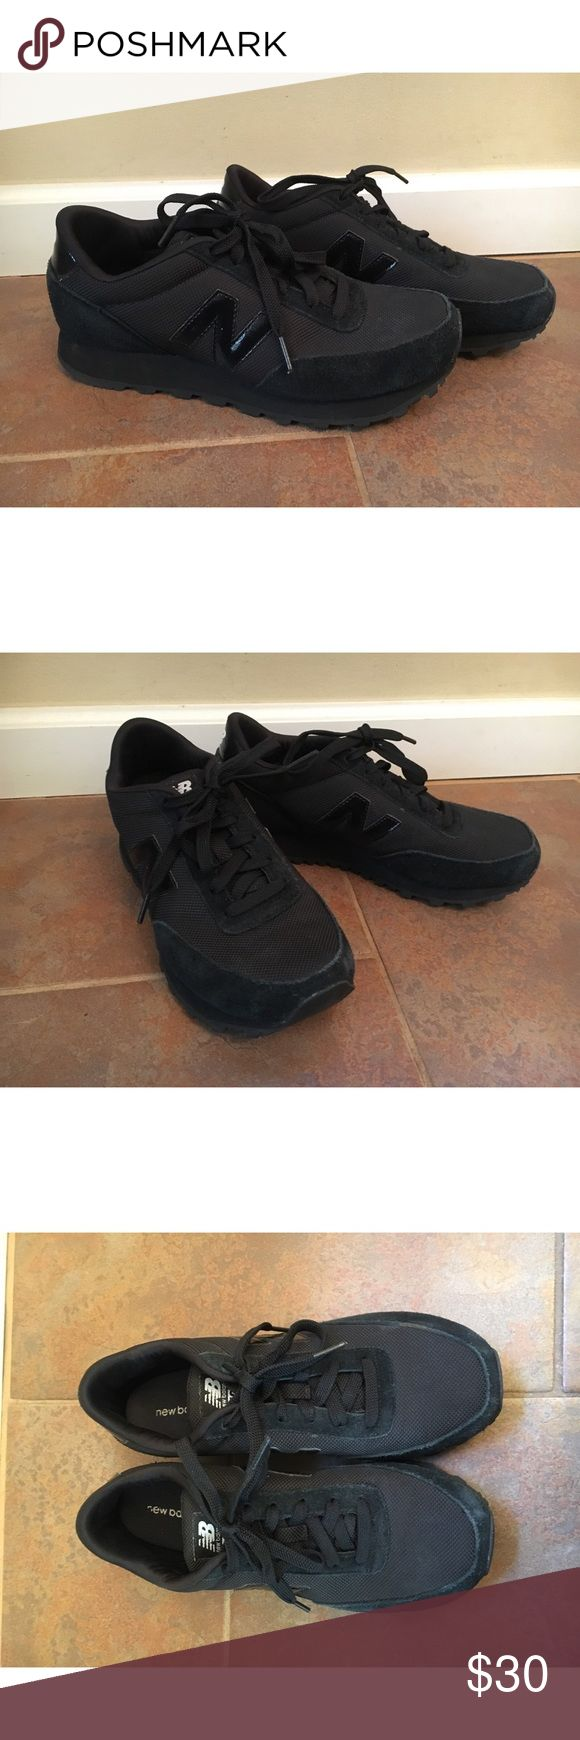 New Balance Black Sneakers All black New Balance Sneakers. Worn only a handful of times and in great condition! New Balance Shoes Sneakers